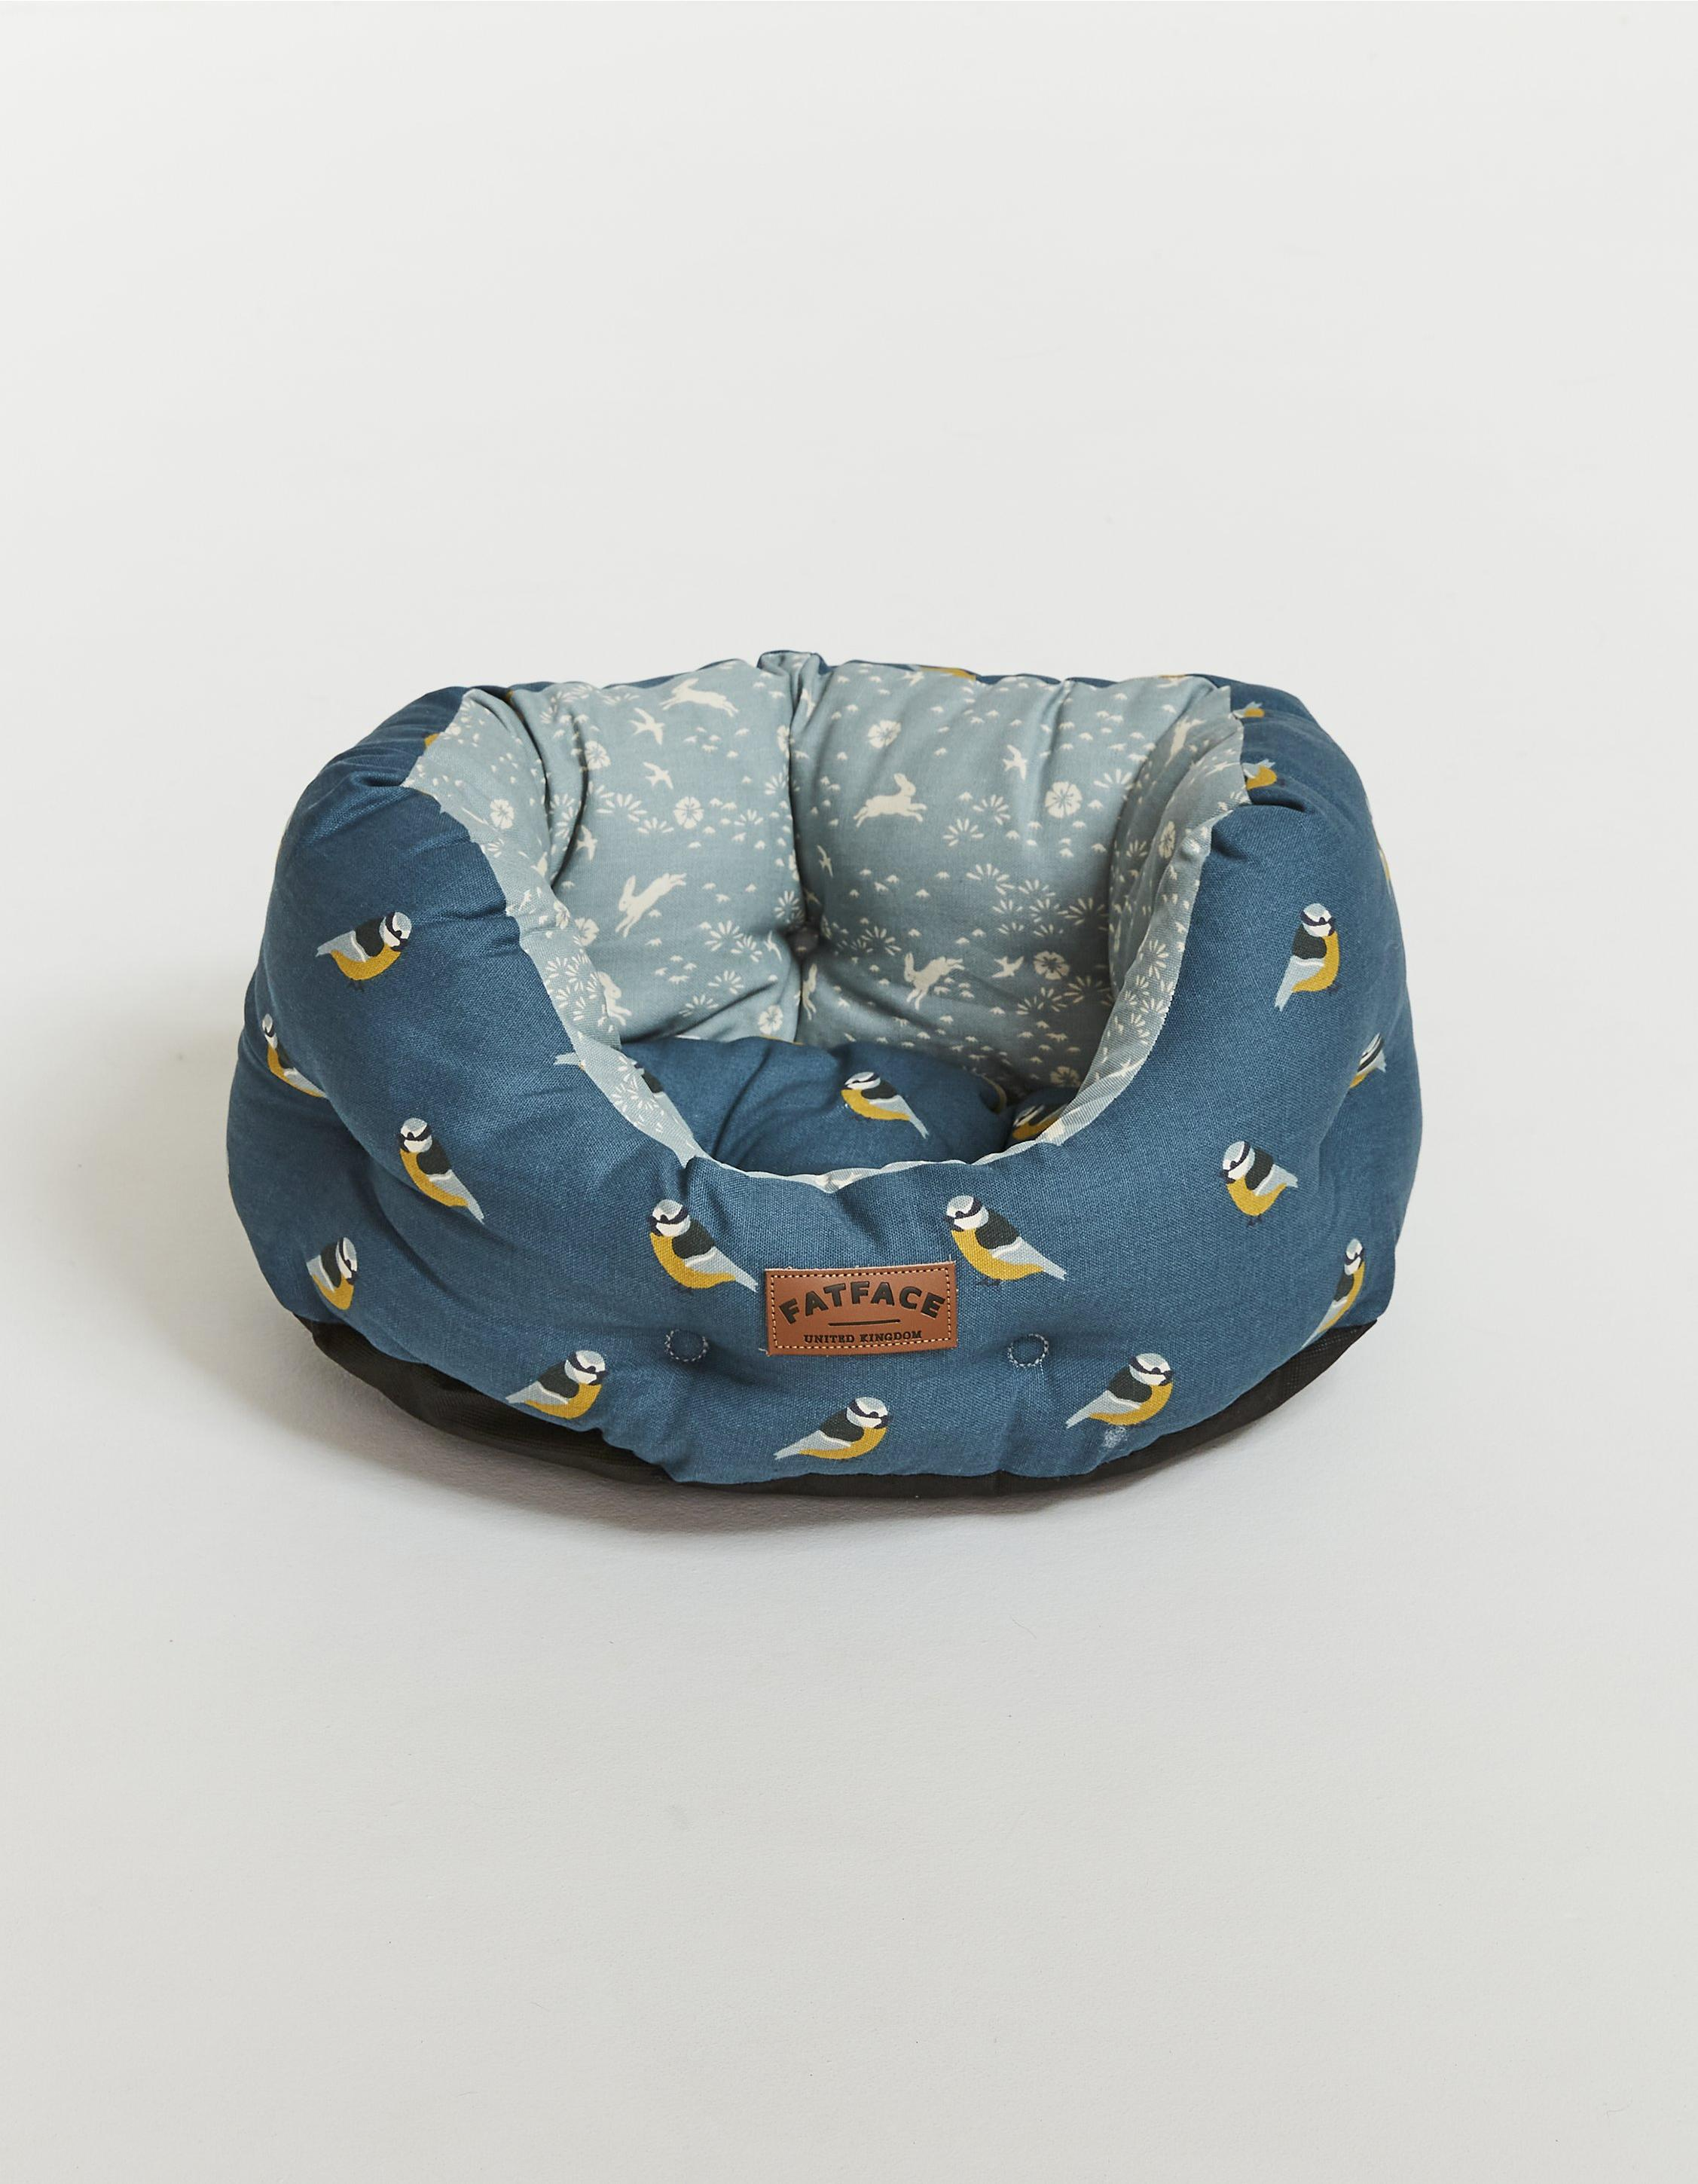 FatFace Flying Birds  Dog Bed 24""